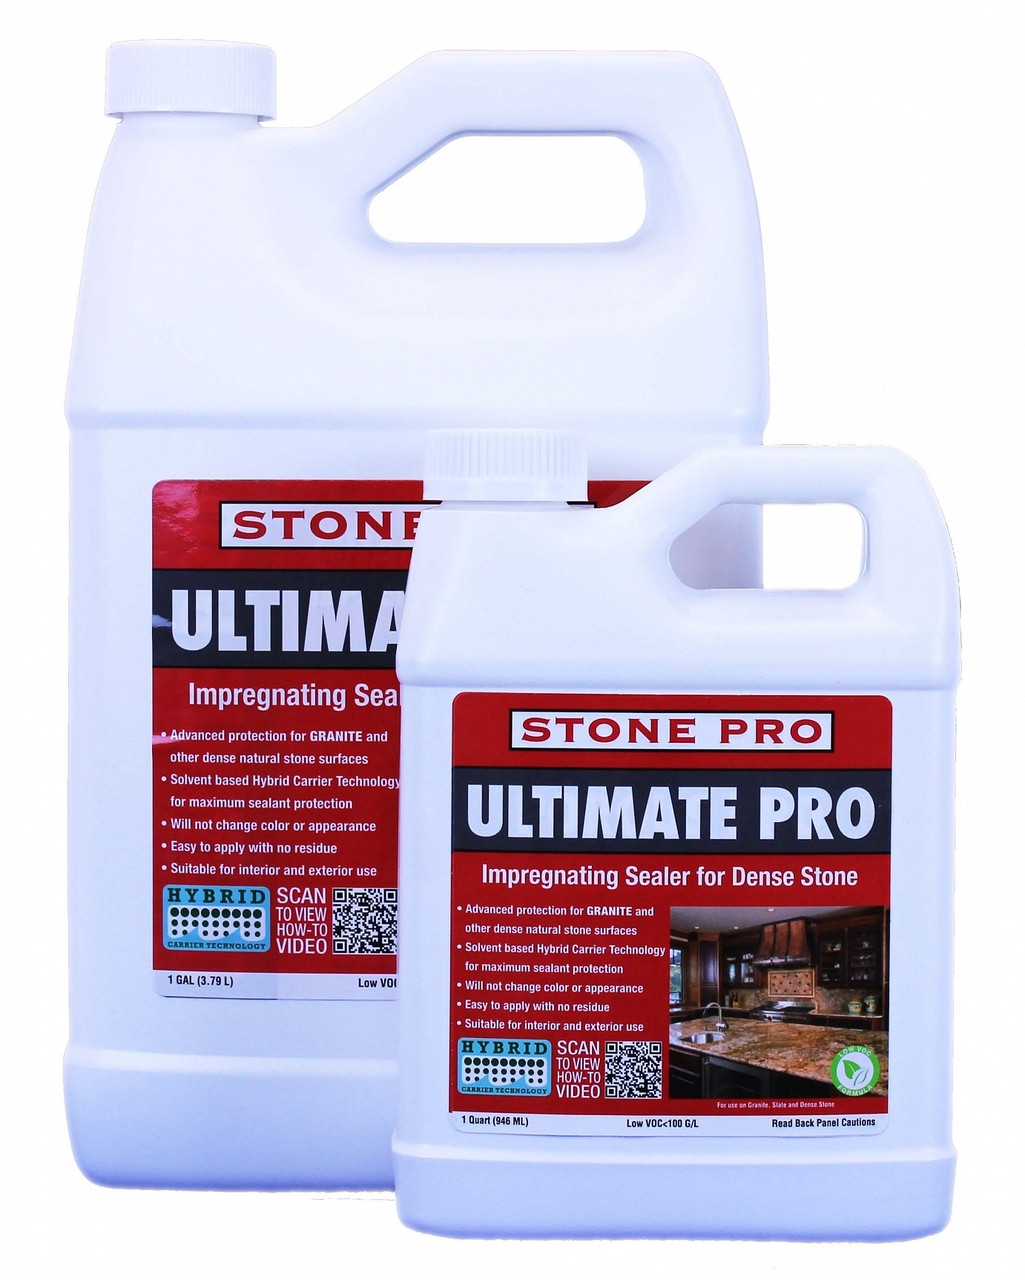 Stone Pro Ultimate Pro – Polished Granite and Marble Sealer